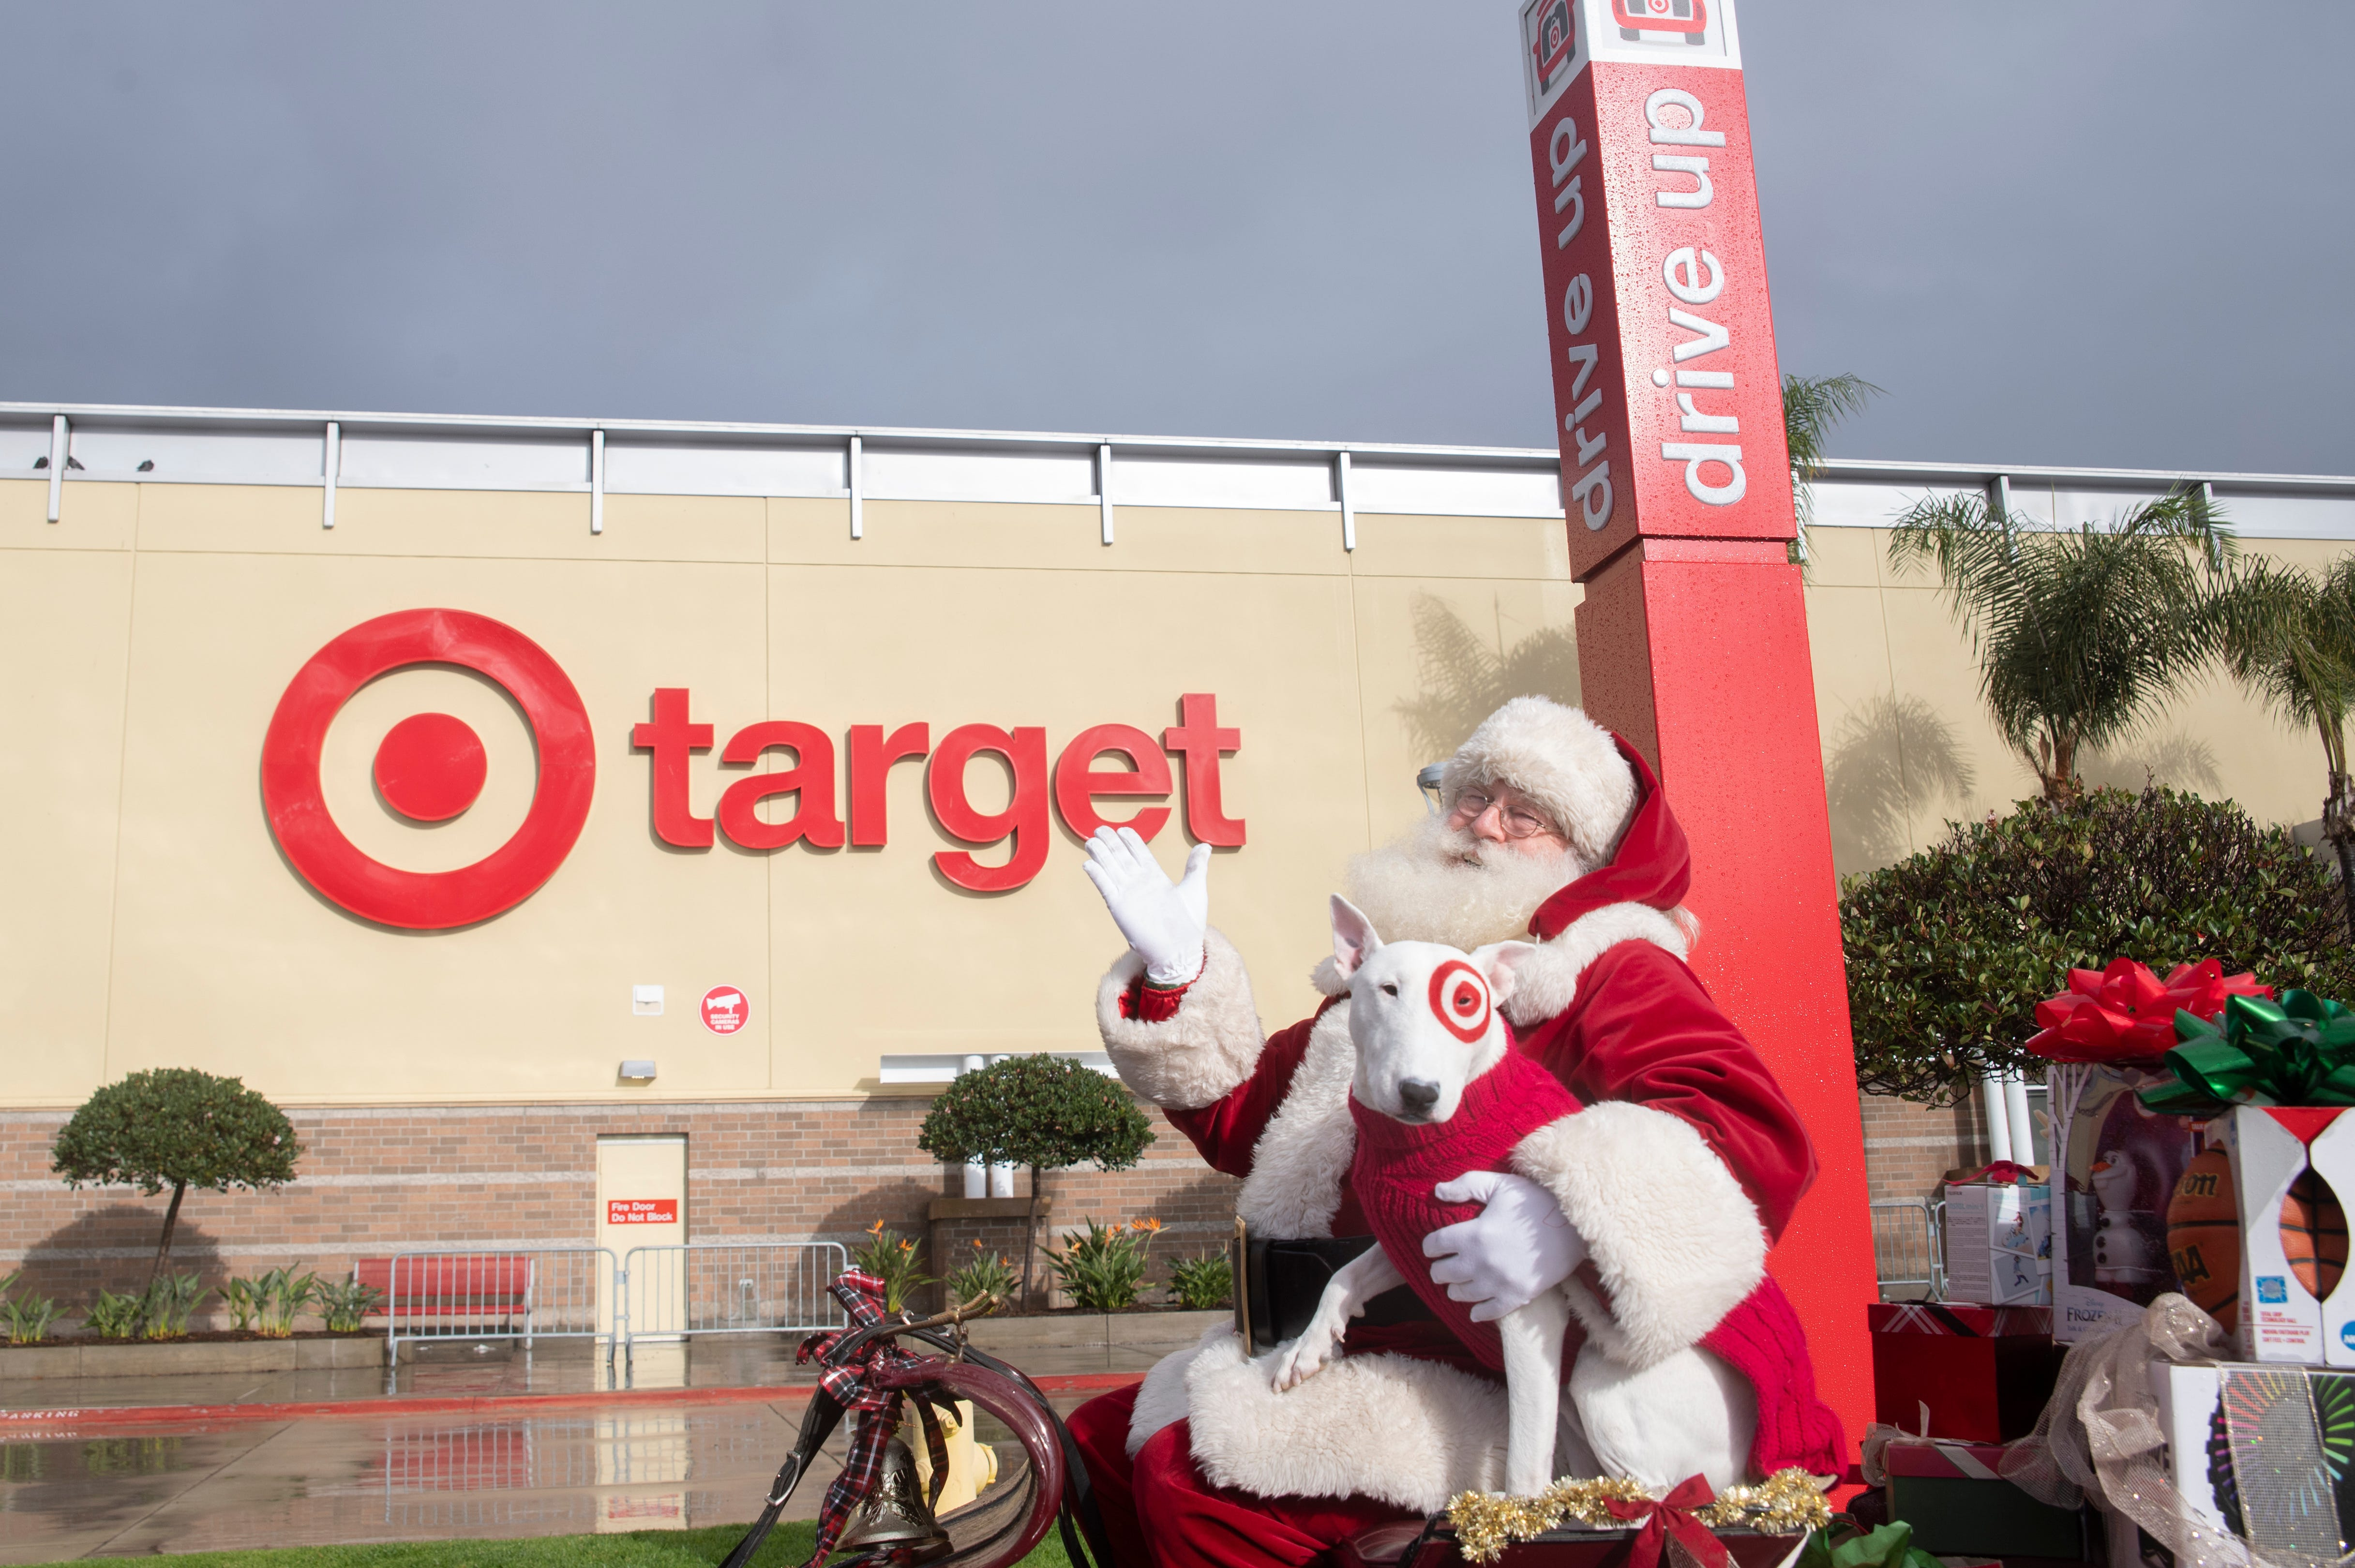 Target announces Christmas Eve ordering deadline for pickup and same-day delivery services